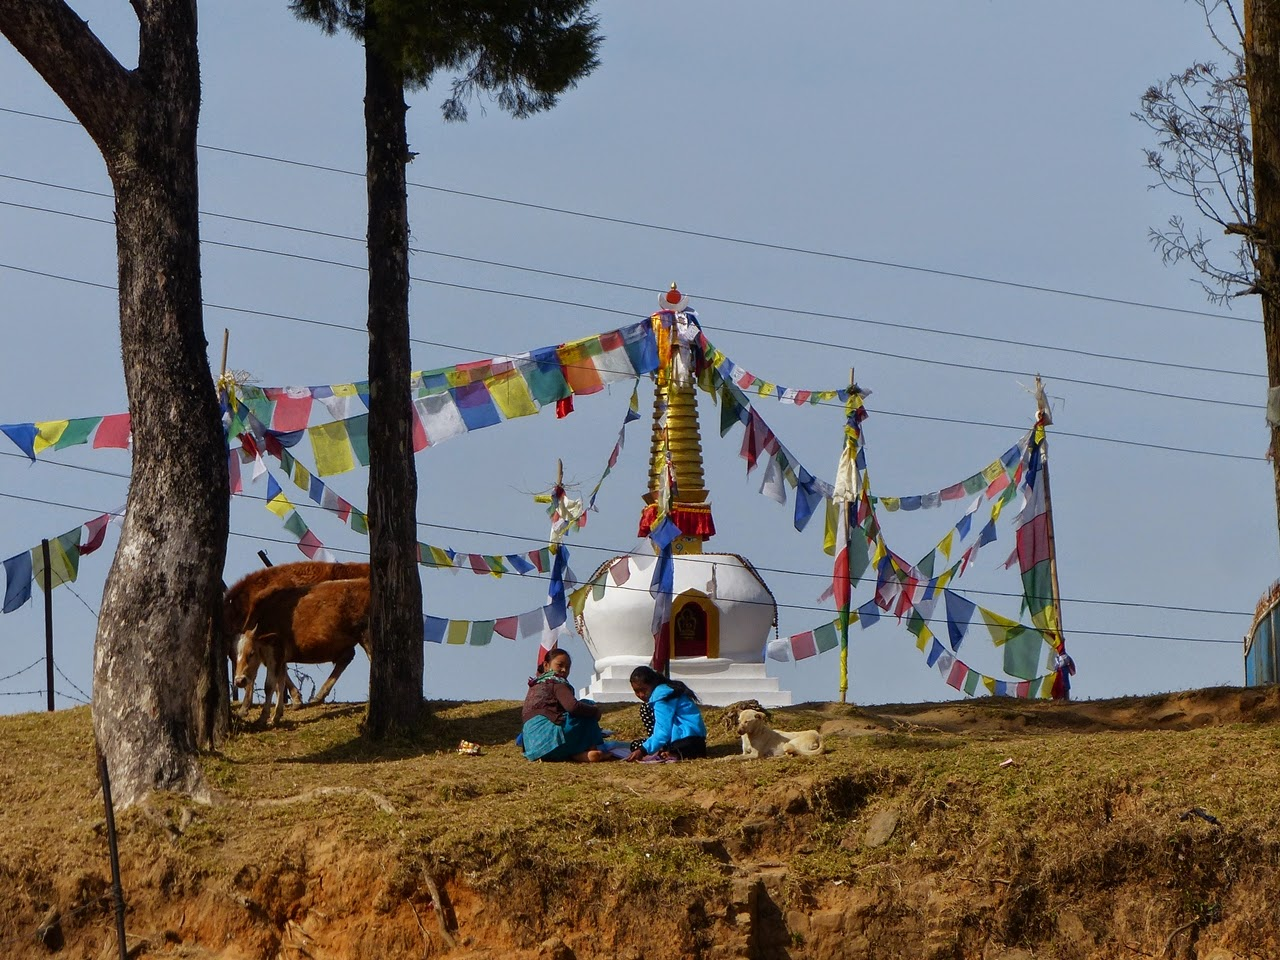 Kids sitting near a Buddhist stupa, Nepal